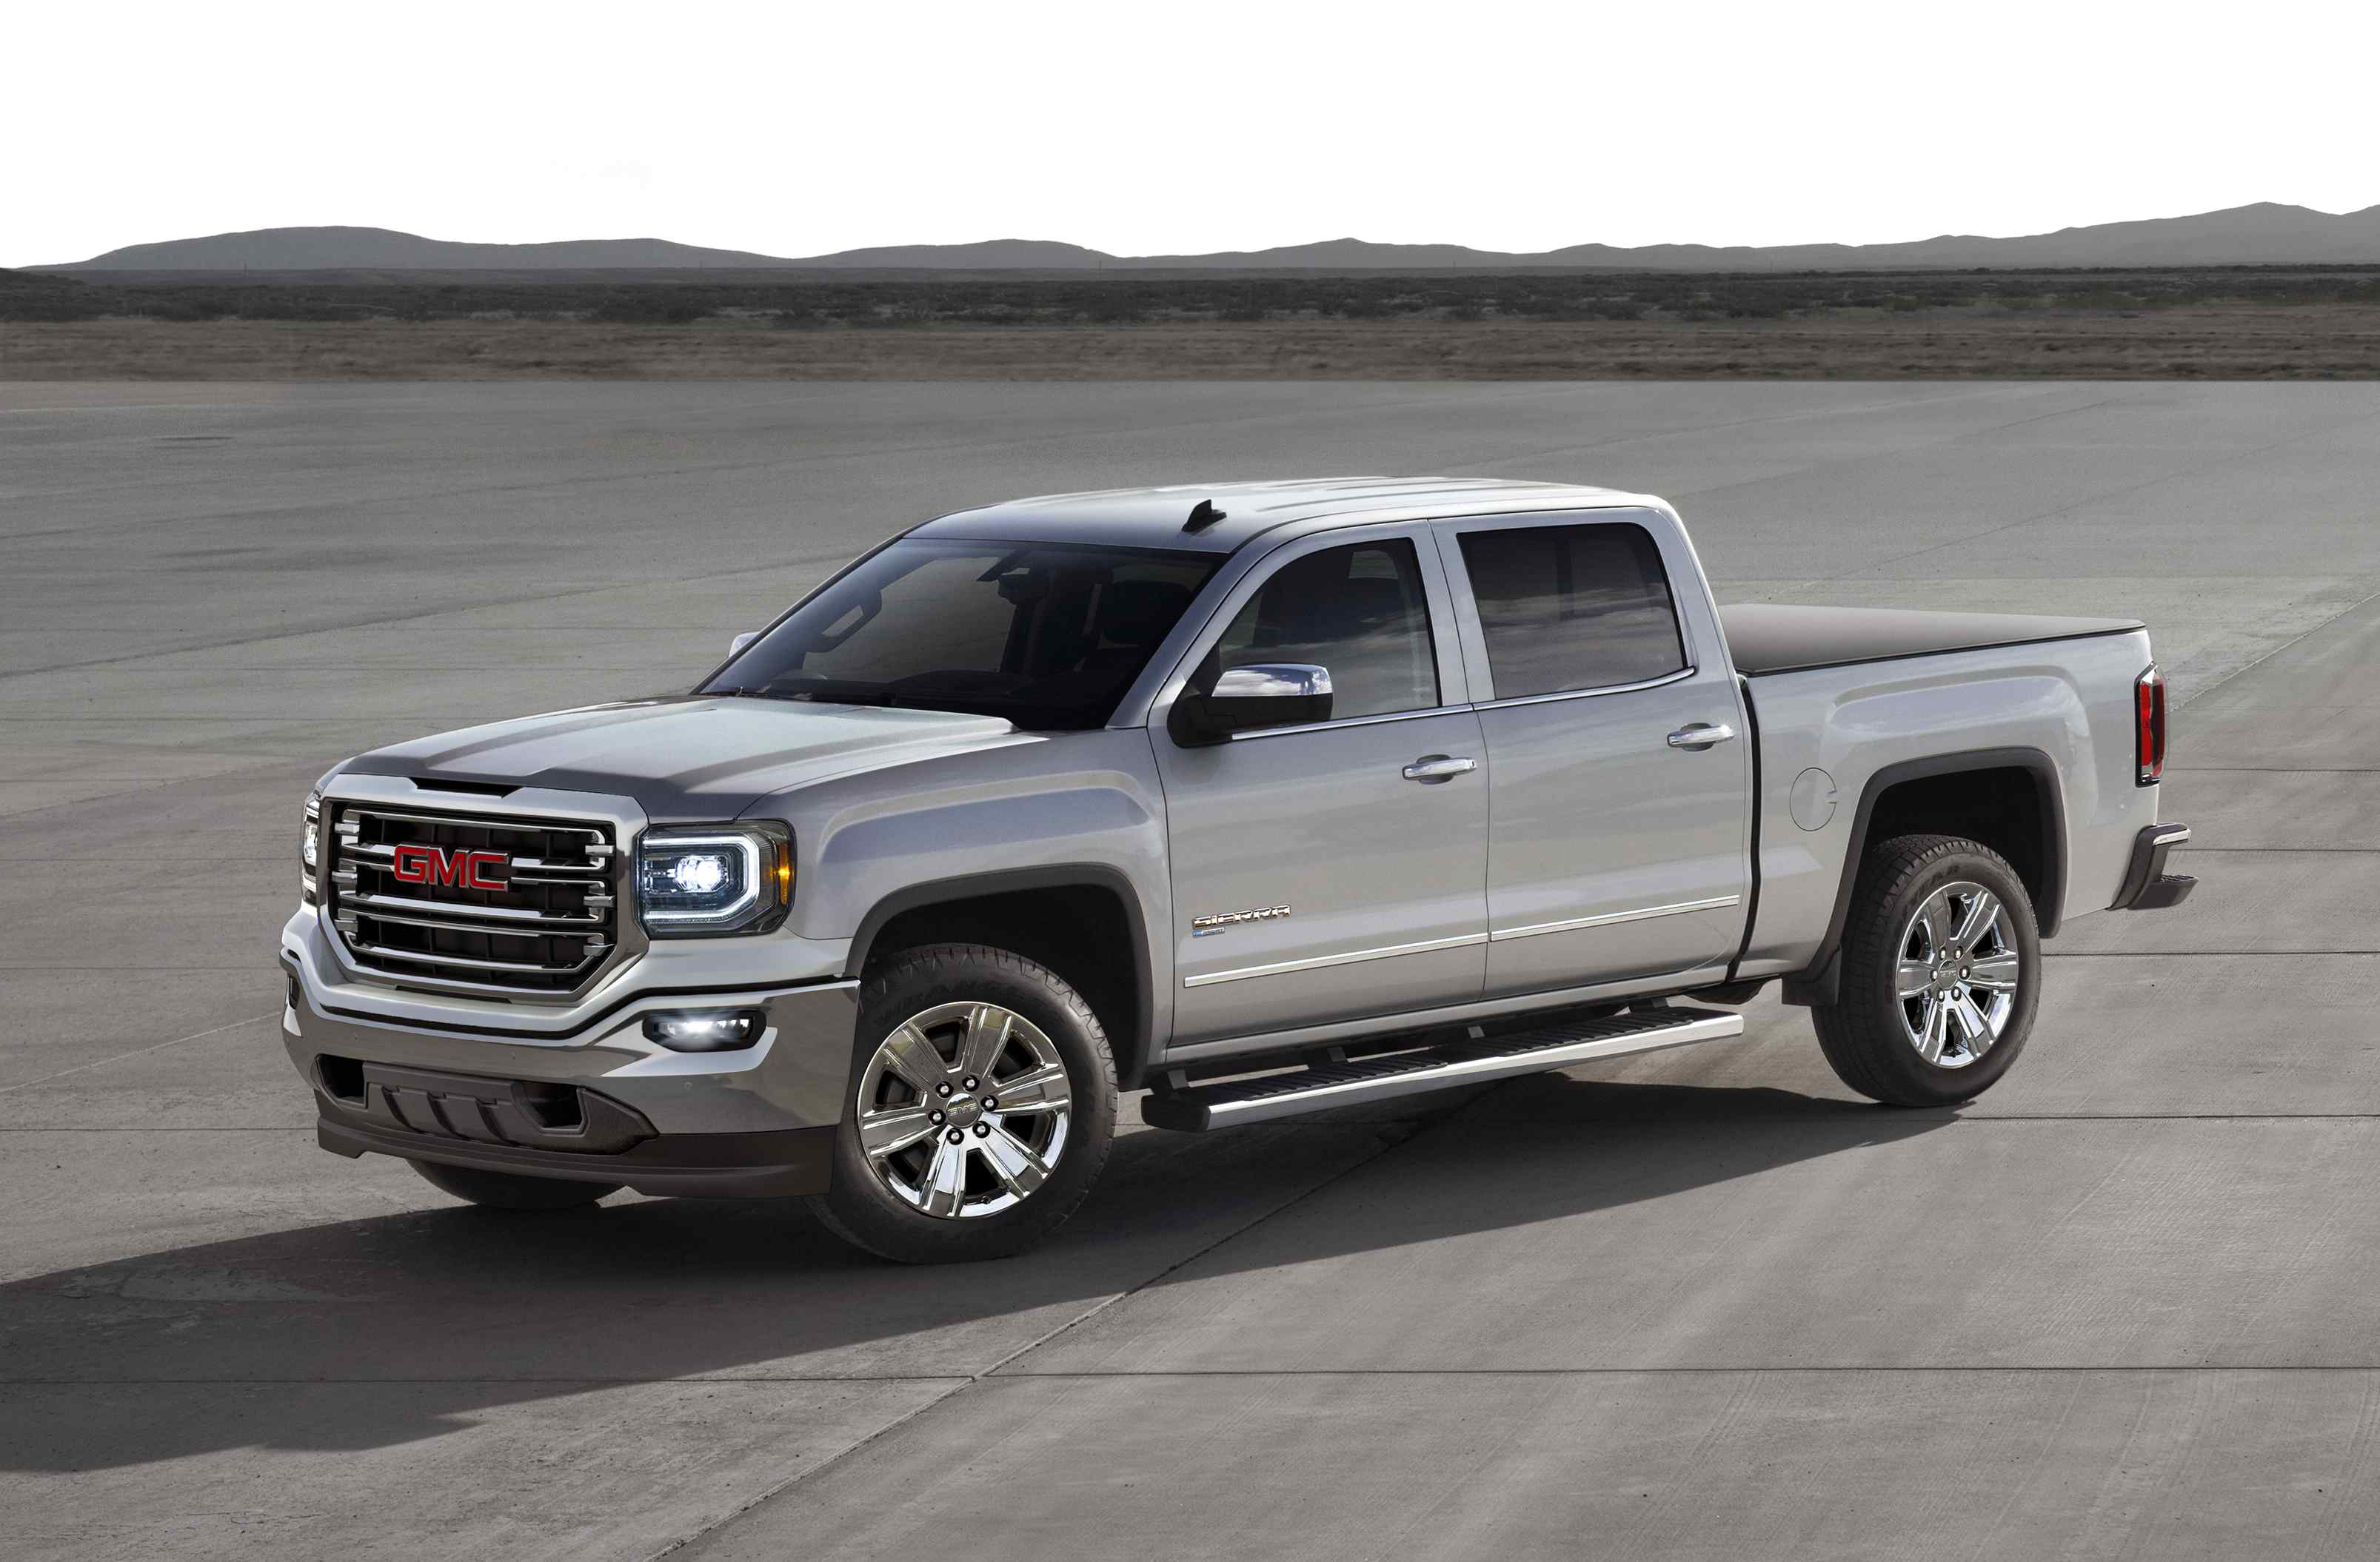 Hybrid gm trucks will be available in california medium duty a limited number of hybrid 2016 gm trucks will be available in california this spring sciox Choice Image